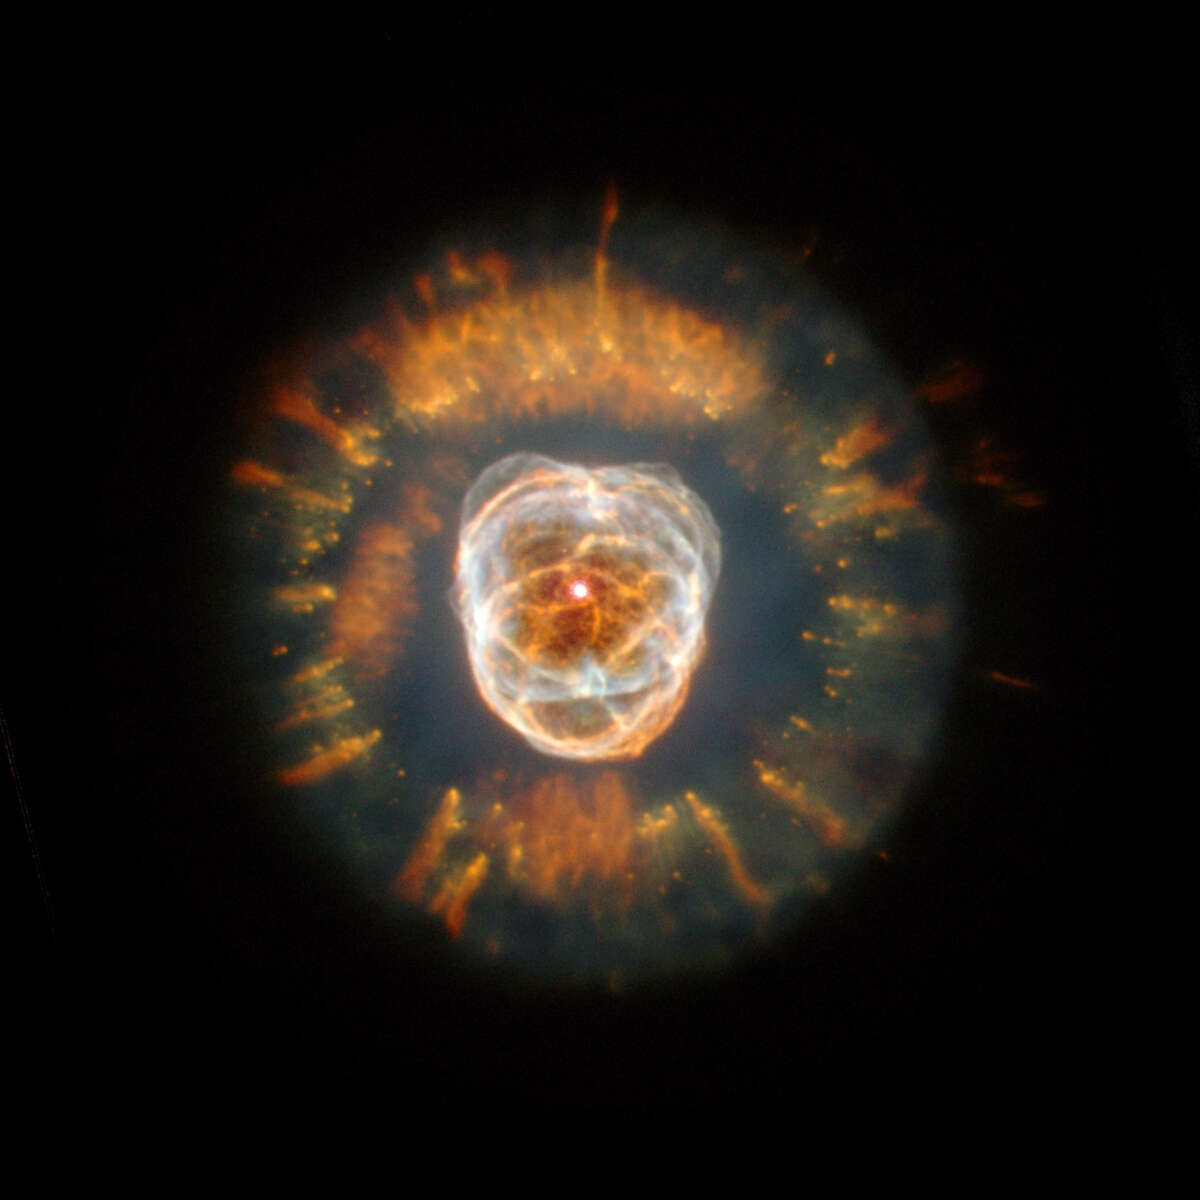 Pictured is planetary nebula NGC 2392, the glowing remains of a Sun-like star that is blowing off its outer layers at the end of its life.